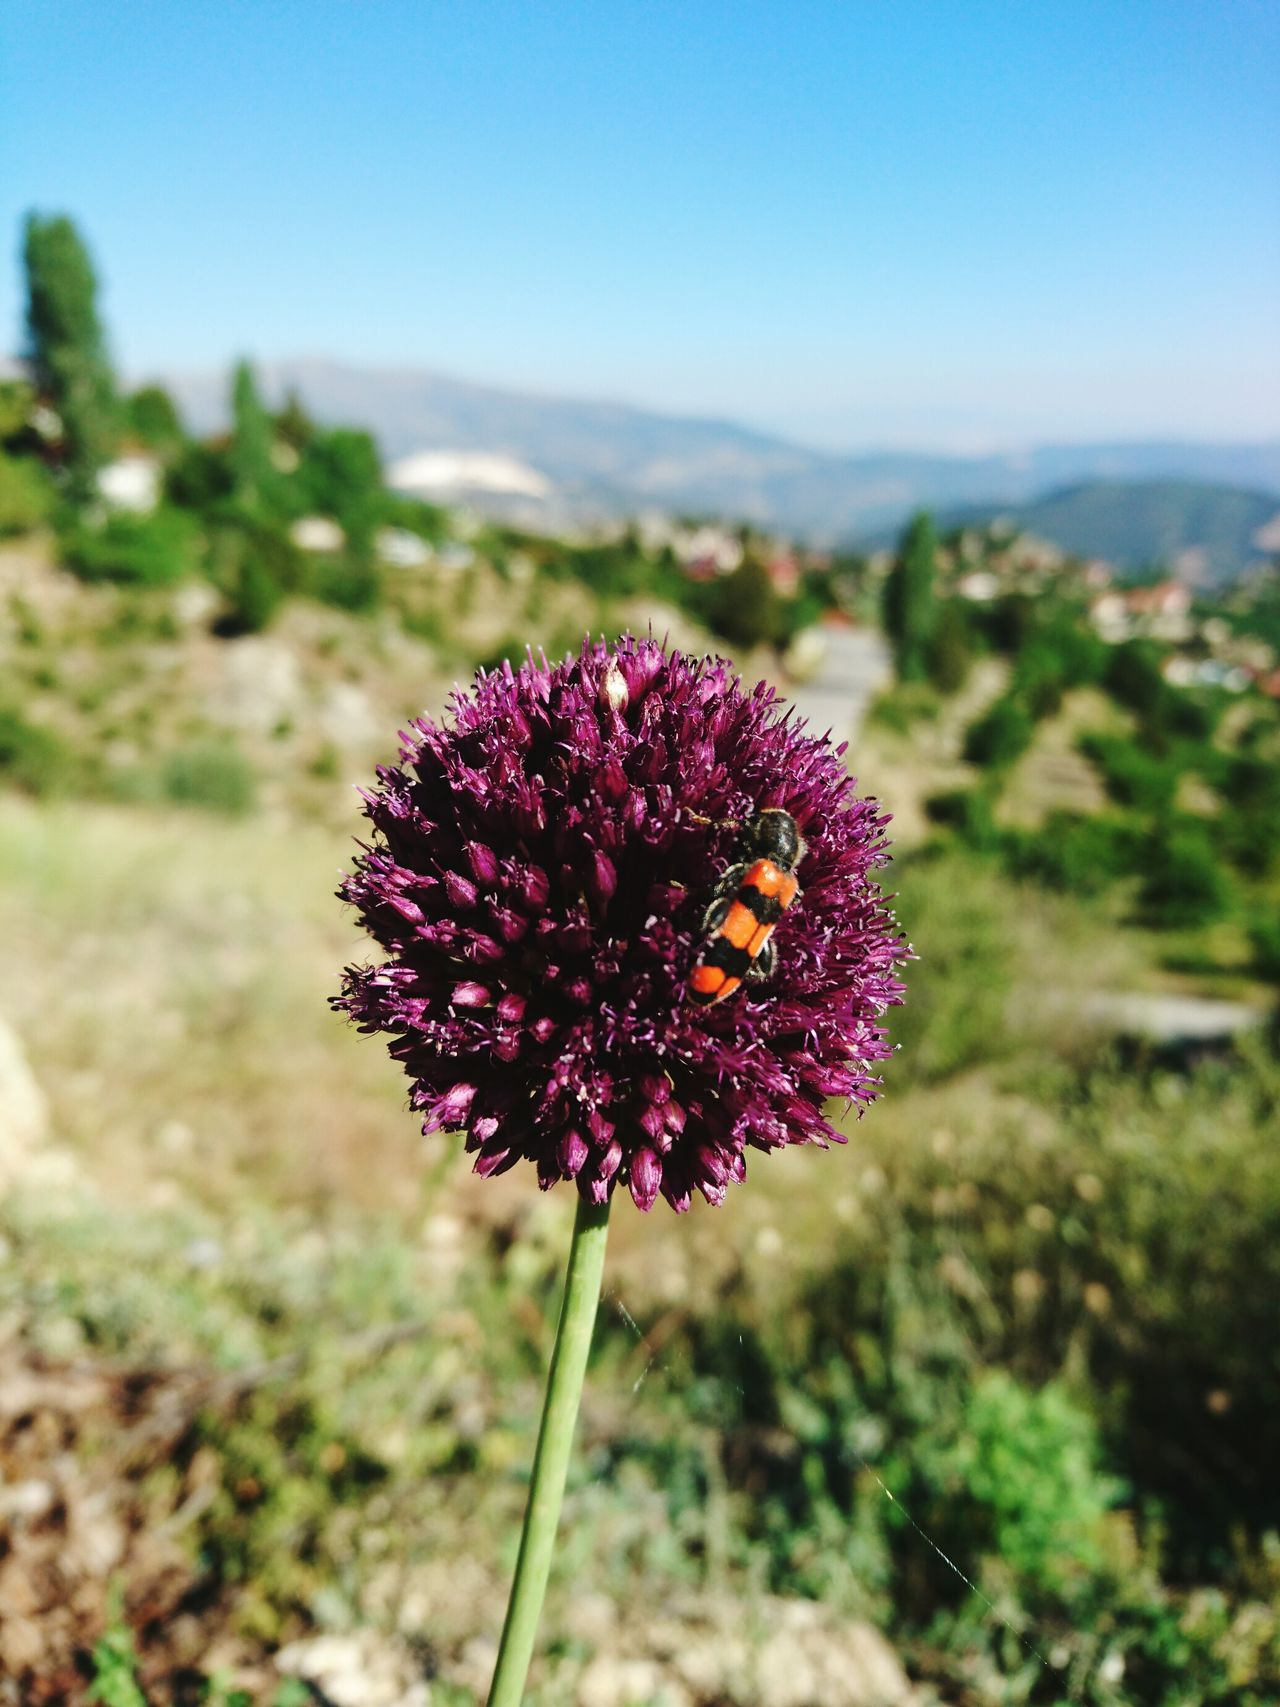 My grandfather's flower 🌸🏞 Taking Photos Enjoying Life TBT  Like4like Instadaily Instagood Eye4photography  EyeEm Nature Lover Likeforlike Eyemphotography Highland Naturelovers Flowerphotographer Flowerphotography Flowerphoto Trees And Sky Purple Insect On Flower Mountain Nature EyeEm Gallery Finding New Frontiers